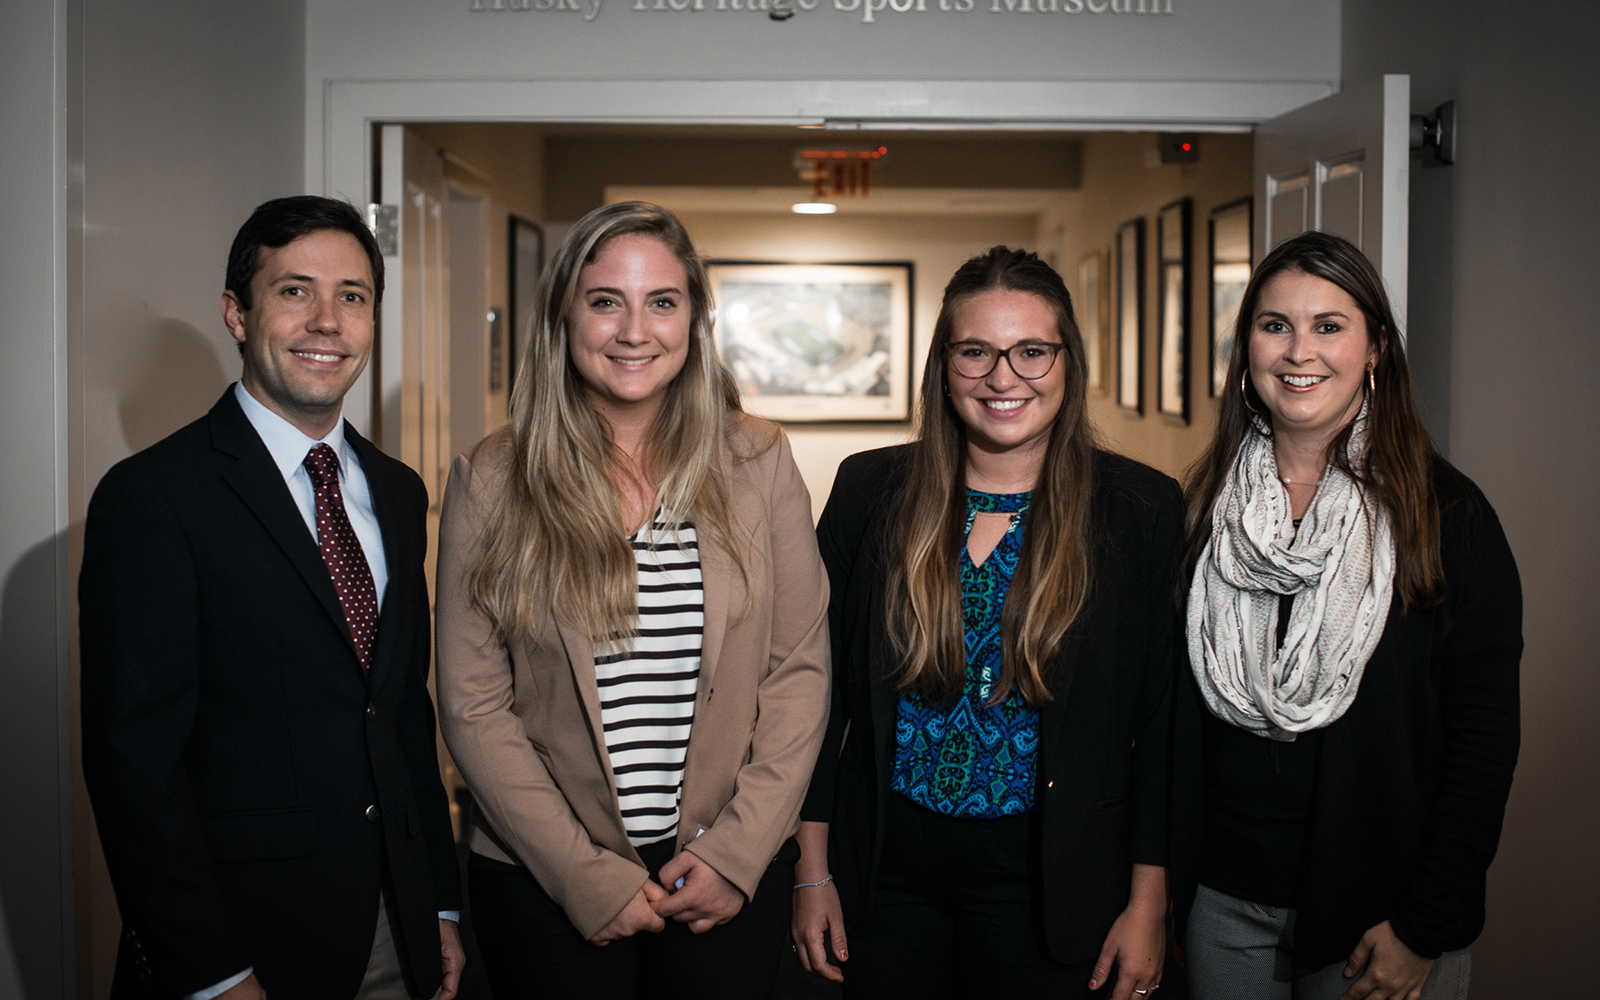 The creators of LambdaVision with two undergraduate student interns who helped represent the company during the CCEI fellowship and again at the Wolff competition. From left, Dr. Jordan Greco '10 (CLAS), '15 Ph.D., Molly Zgoda '17 (CLAS), Audrey Gallo '17 (CLAS), and Dr. Nicole Wagner '07 (CLAS), '13 Ph.D. (Nathan Oldham/UConn School of Business)